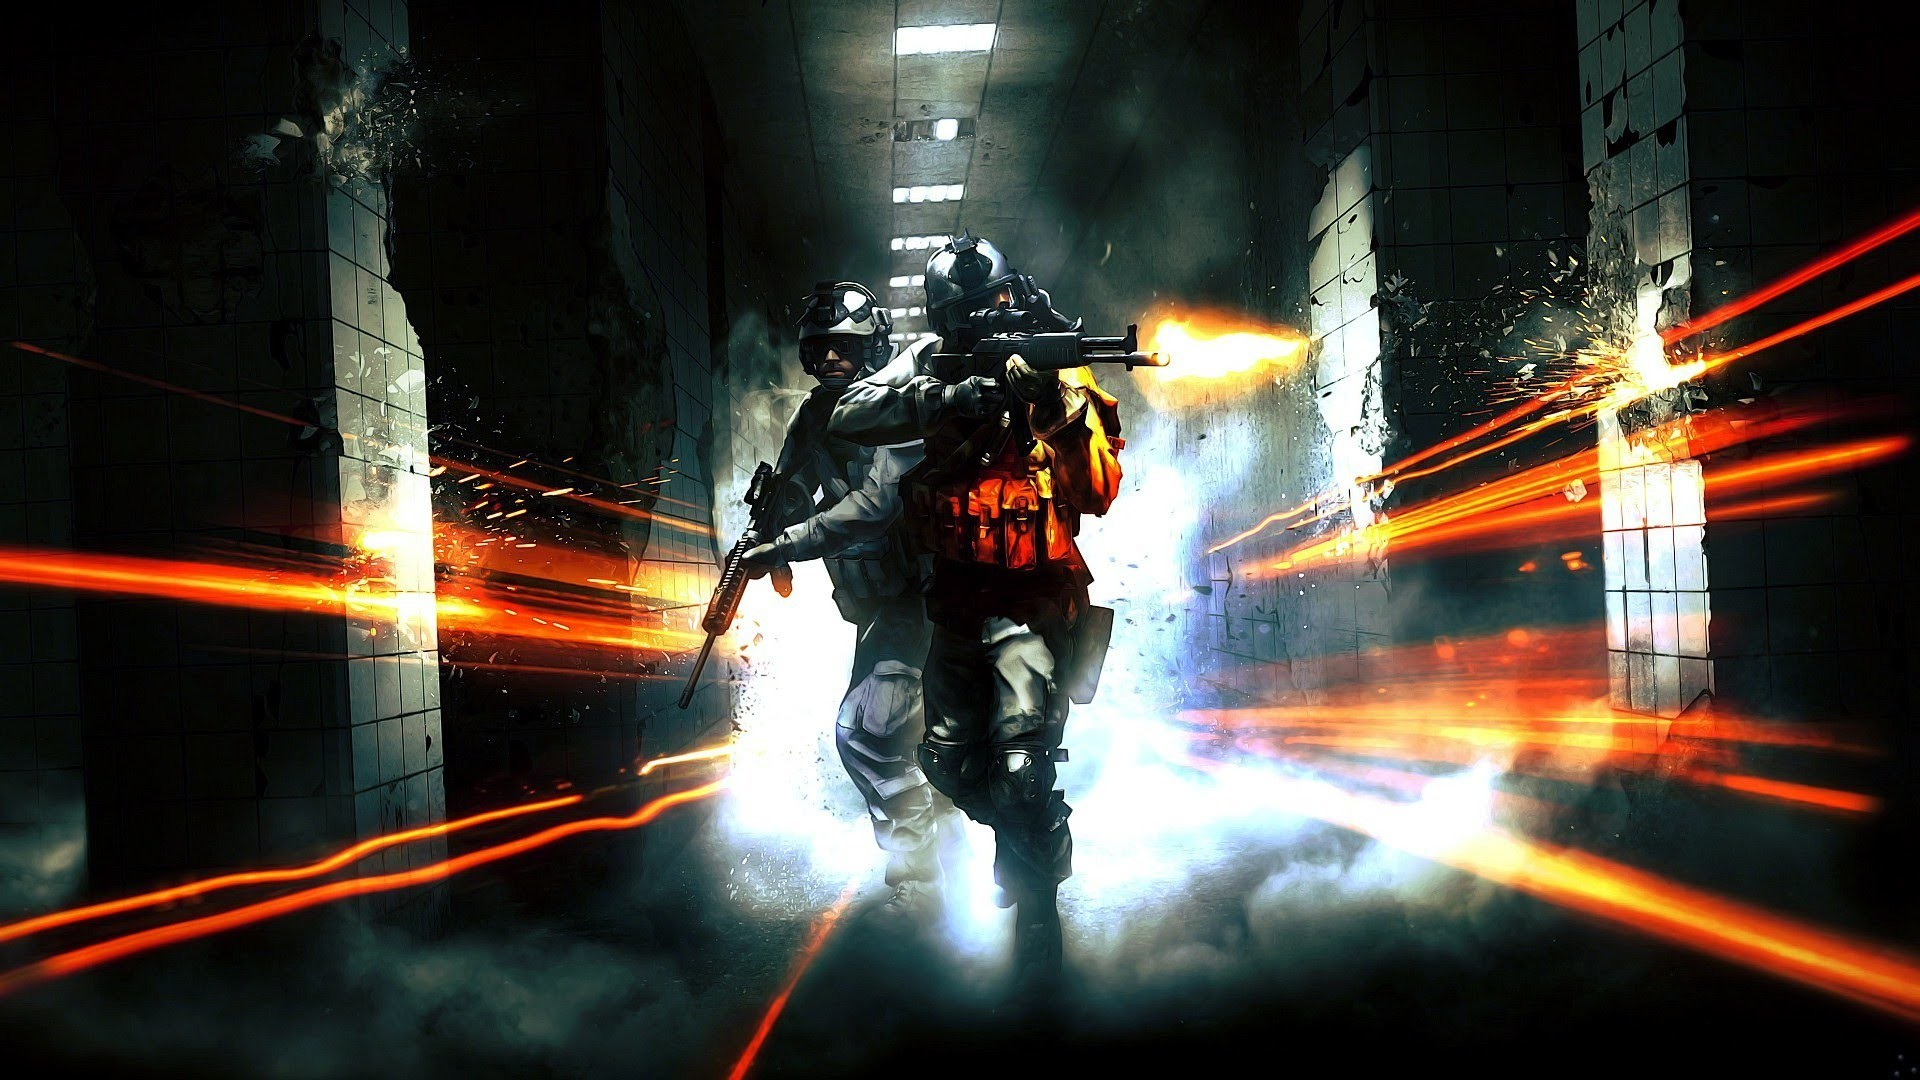 1920x1080 Gaming Music Playlist 2015: Dubstep Electronic Music Mix for Gaming Music  for Playing lol Cod - YouTube